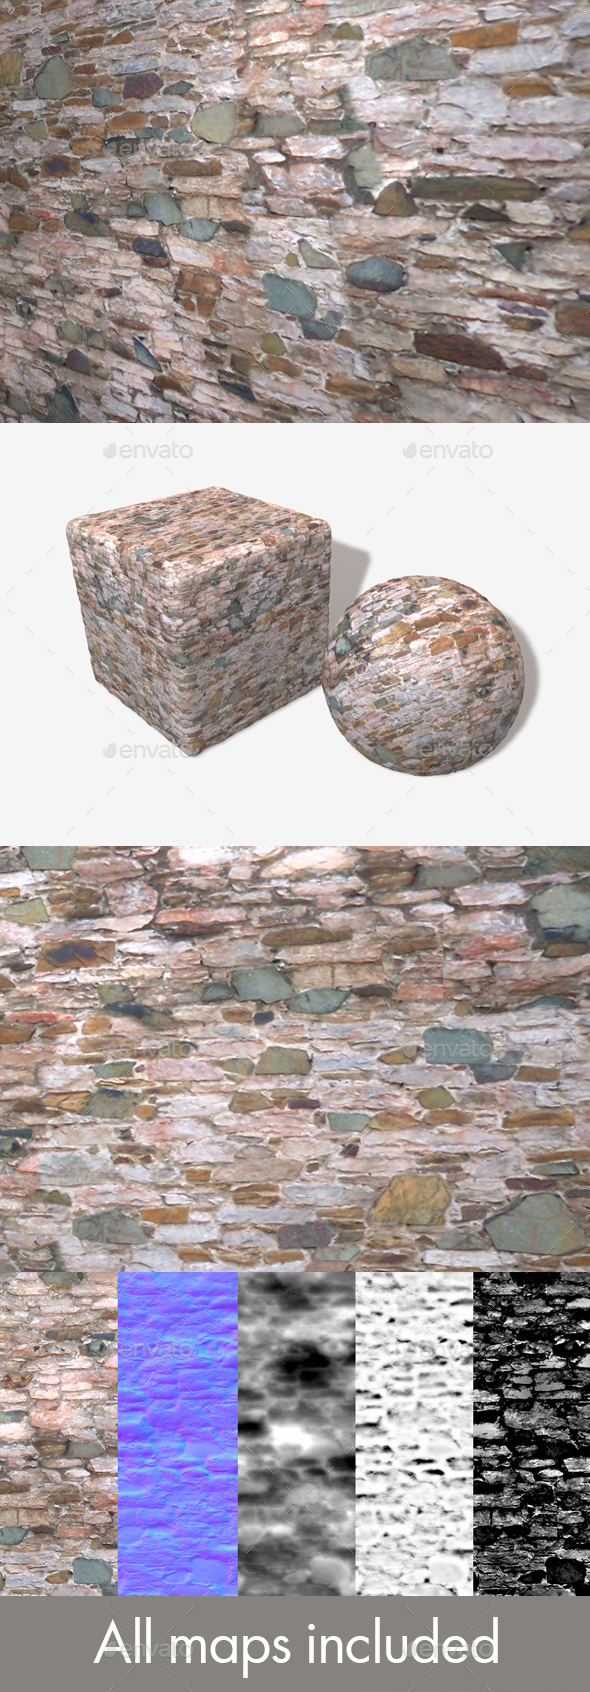 Colourful Rock Wall Seamless Texture - 3DOcean Item for Sale